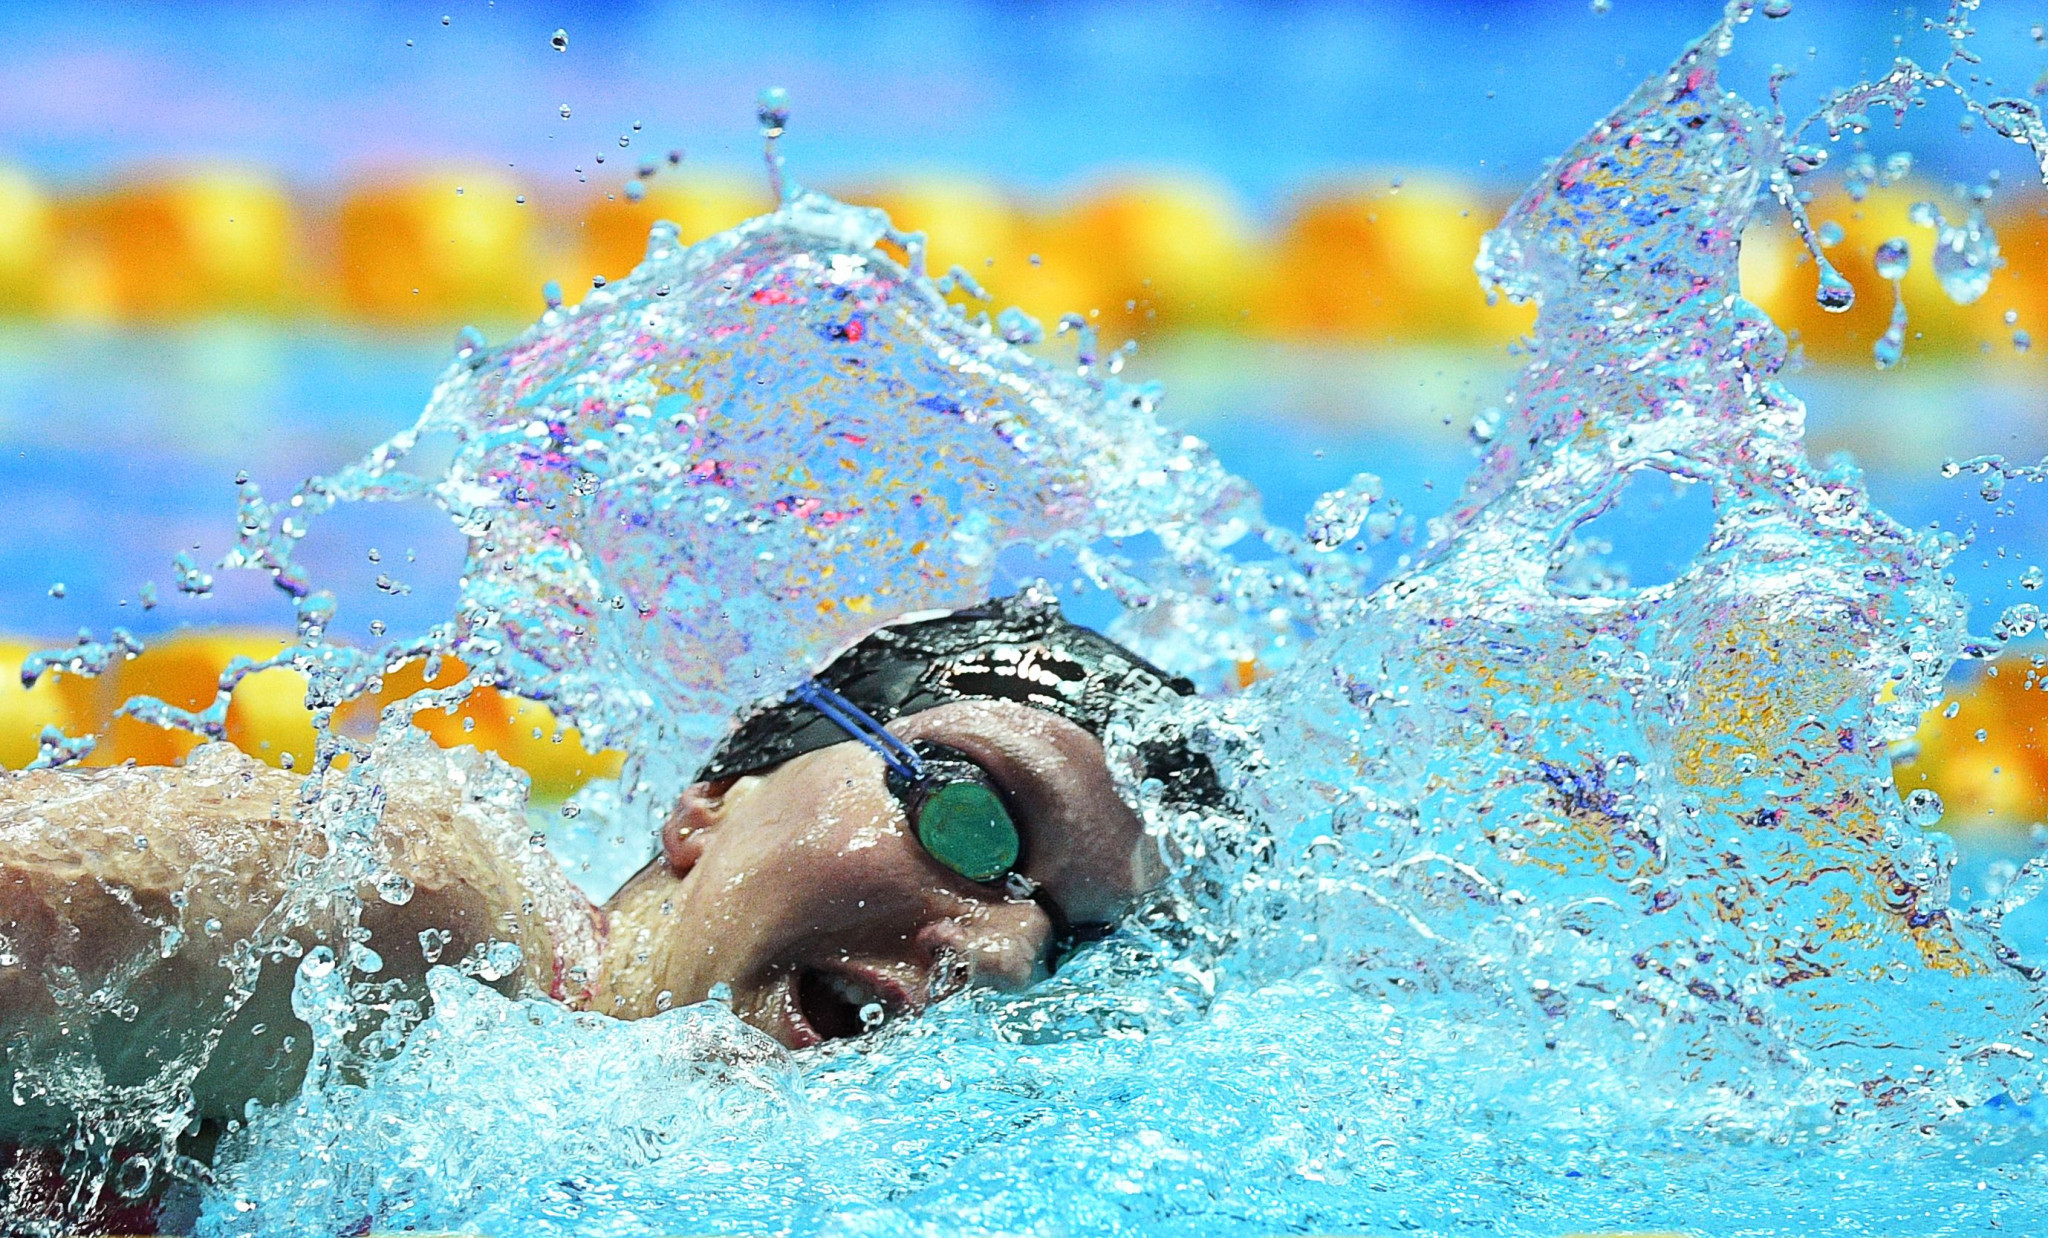 World records under threat as Americans do battle at International Swimming League meet in Maryland